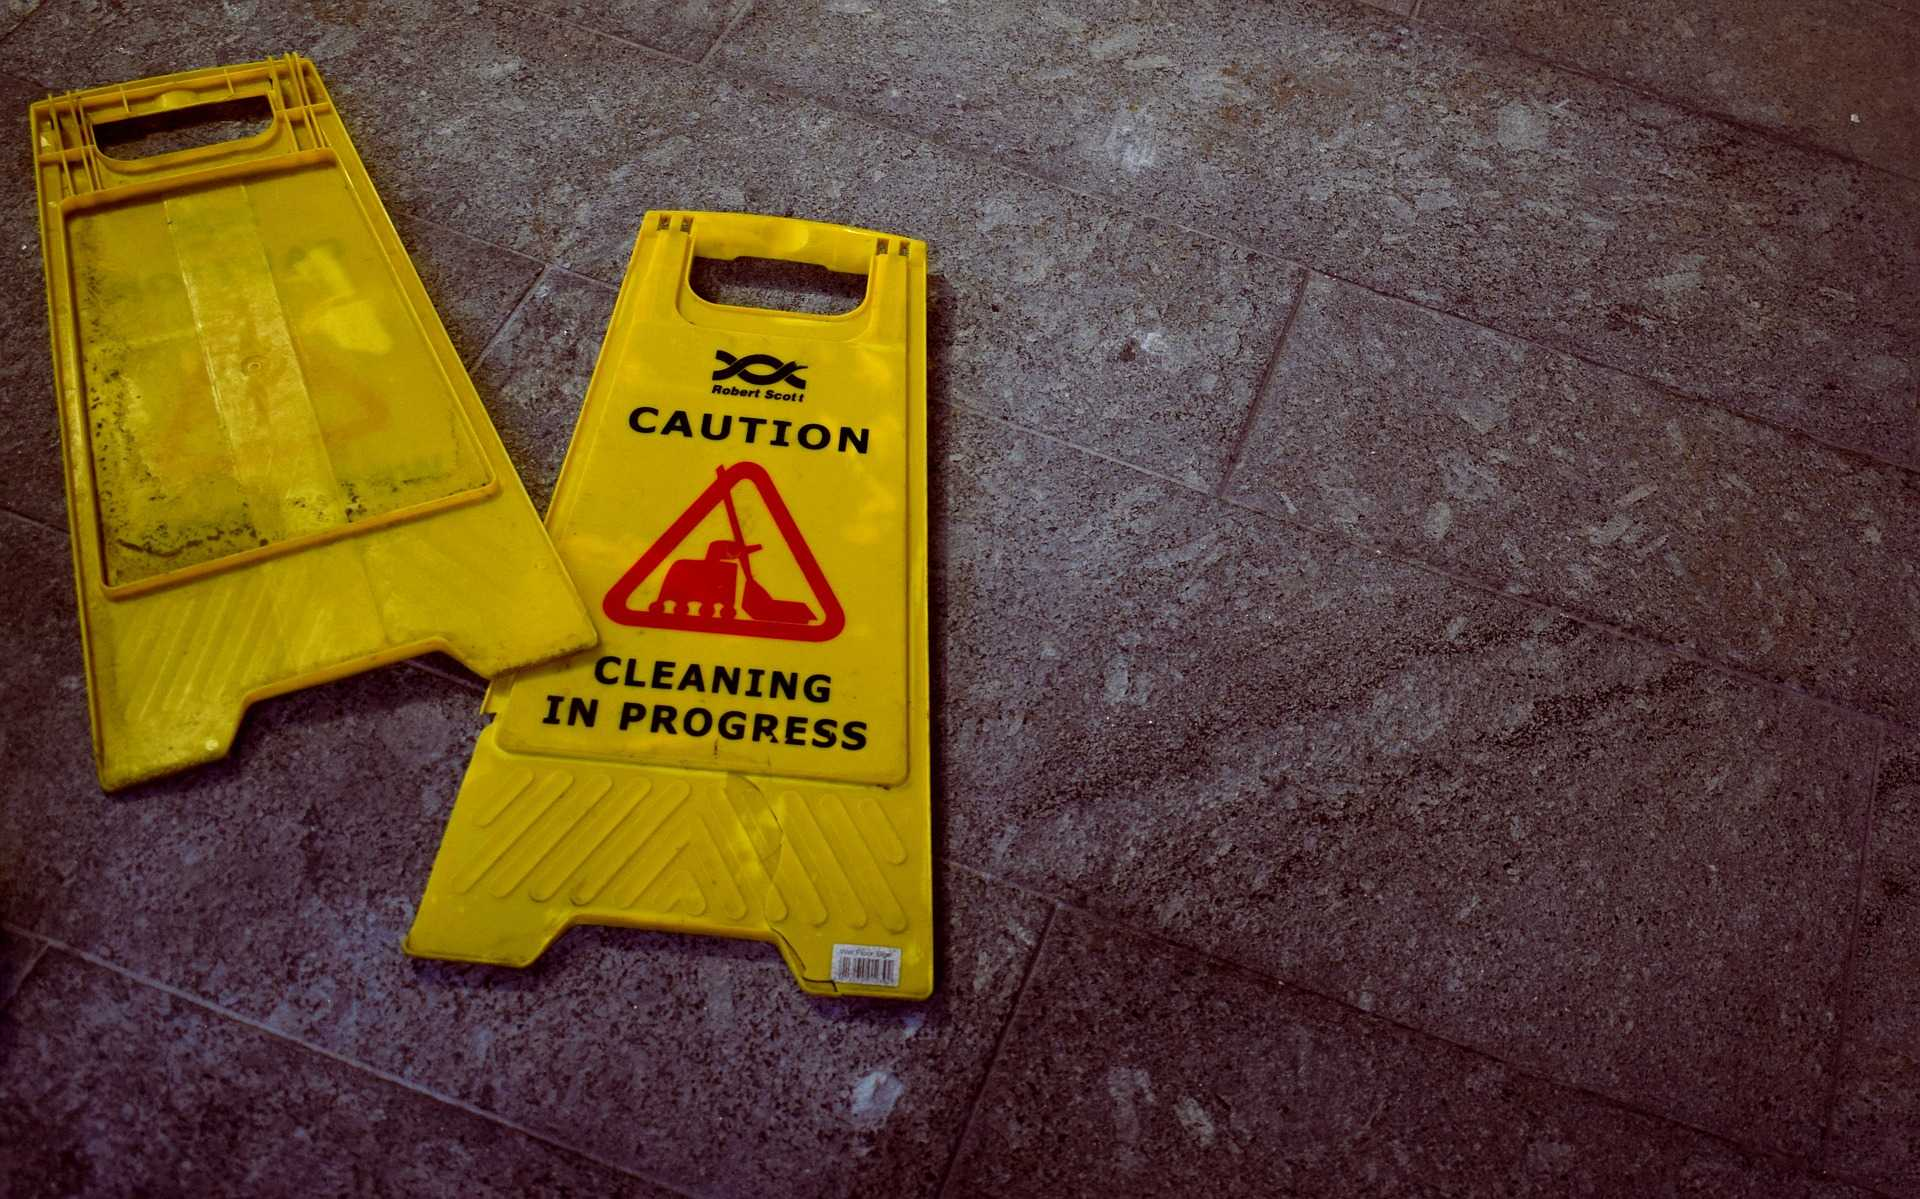 Check for warning signs near hazards